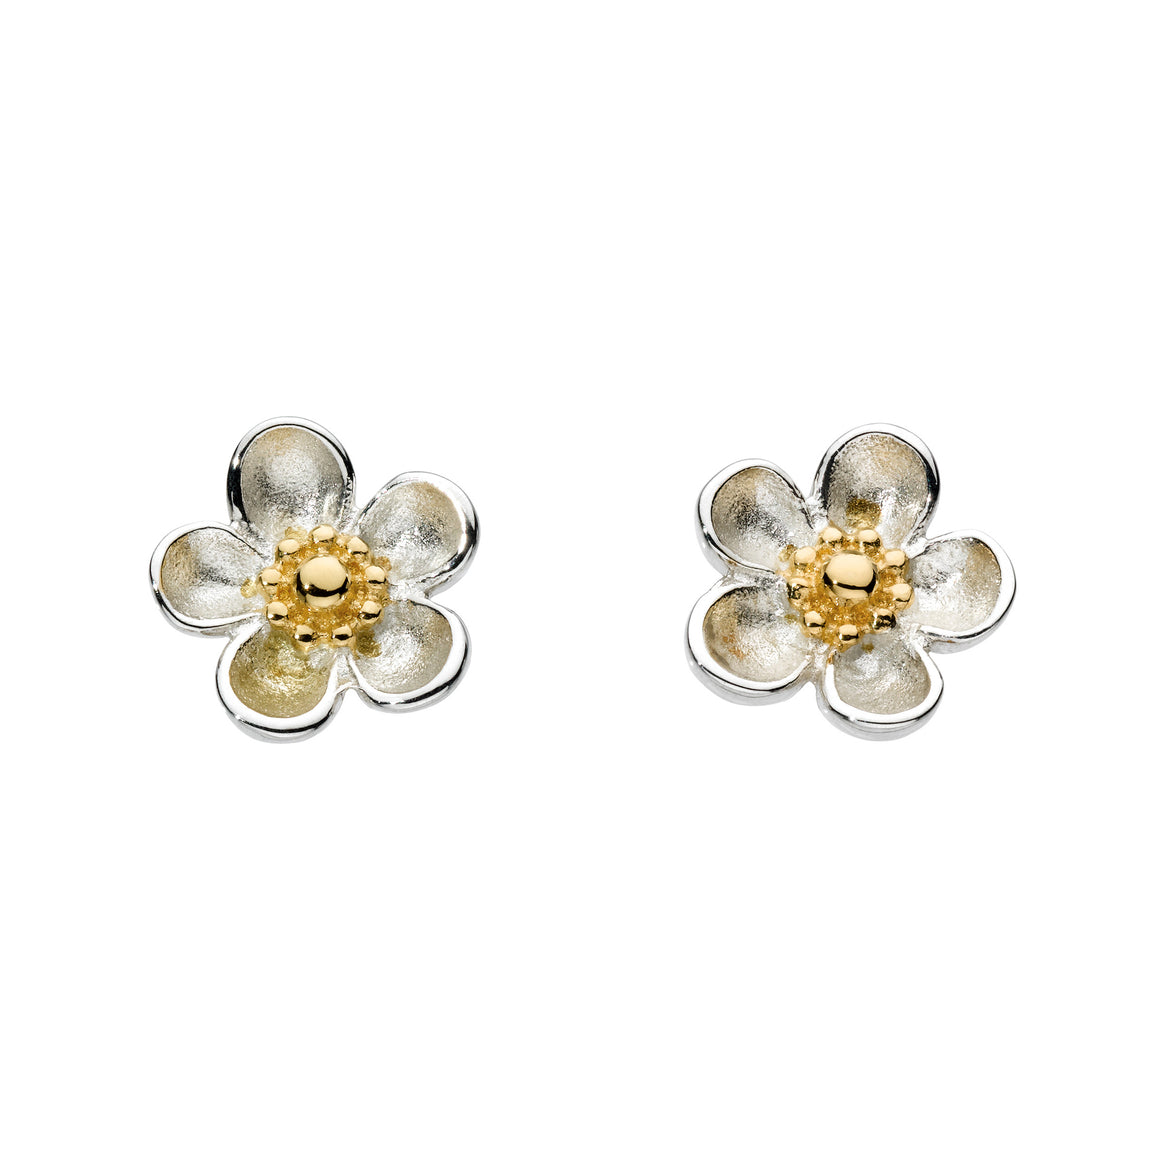 Blossom Wood Rose Gold Plate Stud Earrings - 30305gd